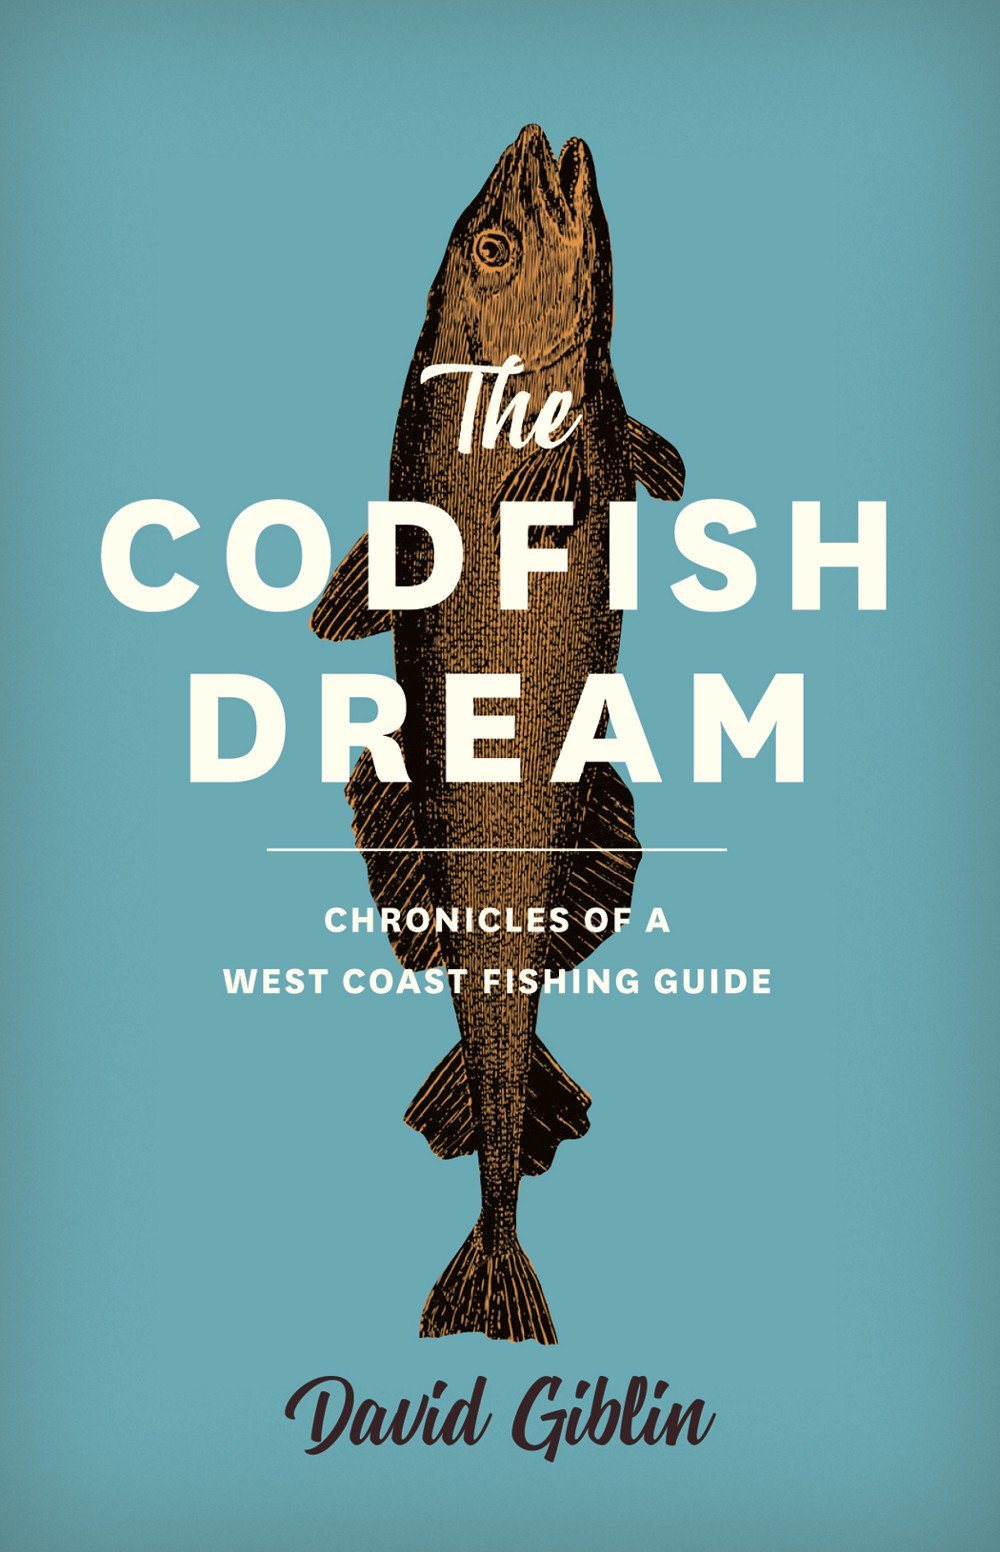 """""""The Codfish Dream is a wonderful book: witty, whimsical, well-written, and a terrific read from cover to cover. Pour yourself a beverage of your choice (the author is partial to wine) and settle in. You'll smile, chuckle, and laugh out loud on almost every page.""""   Ian Ferguson, author & winner of Stephen Leacock Medal for  Village of the Small Houses"""